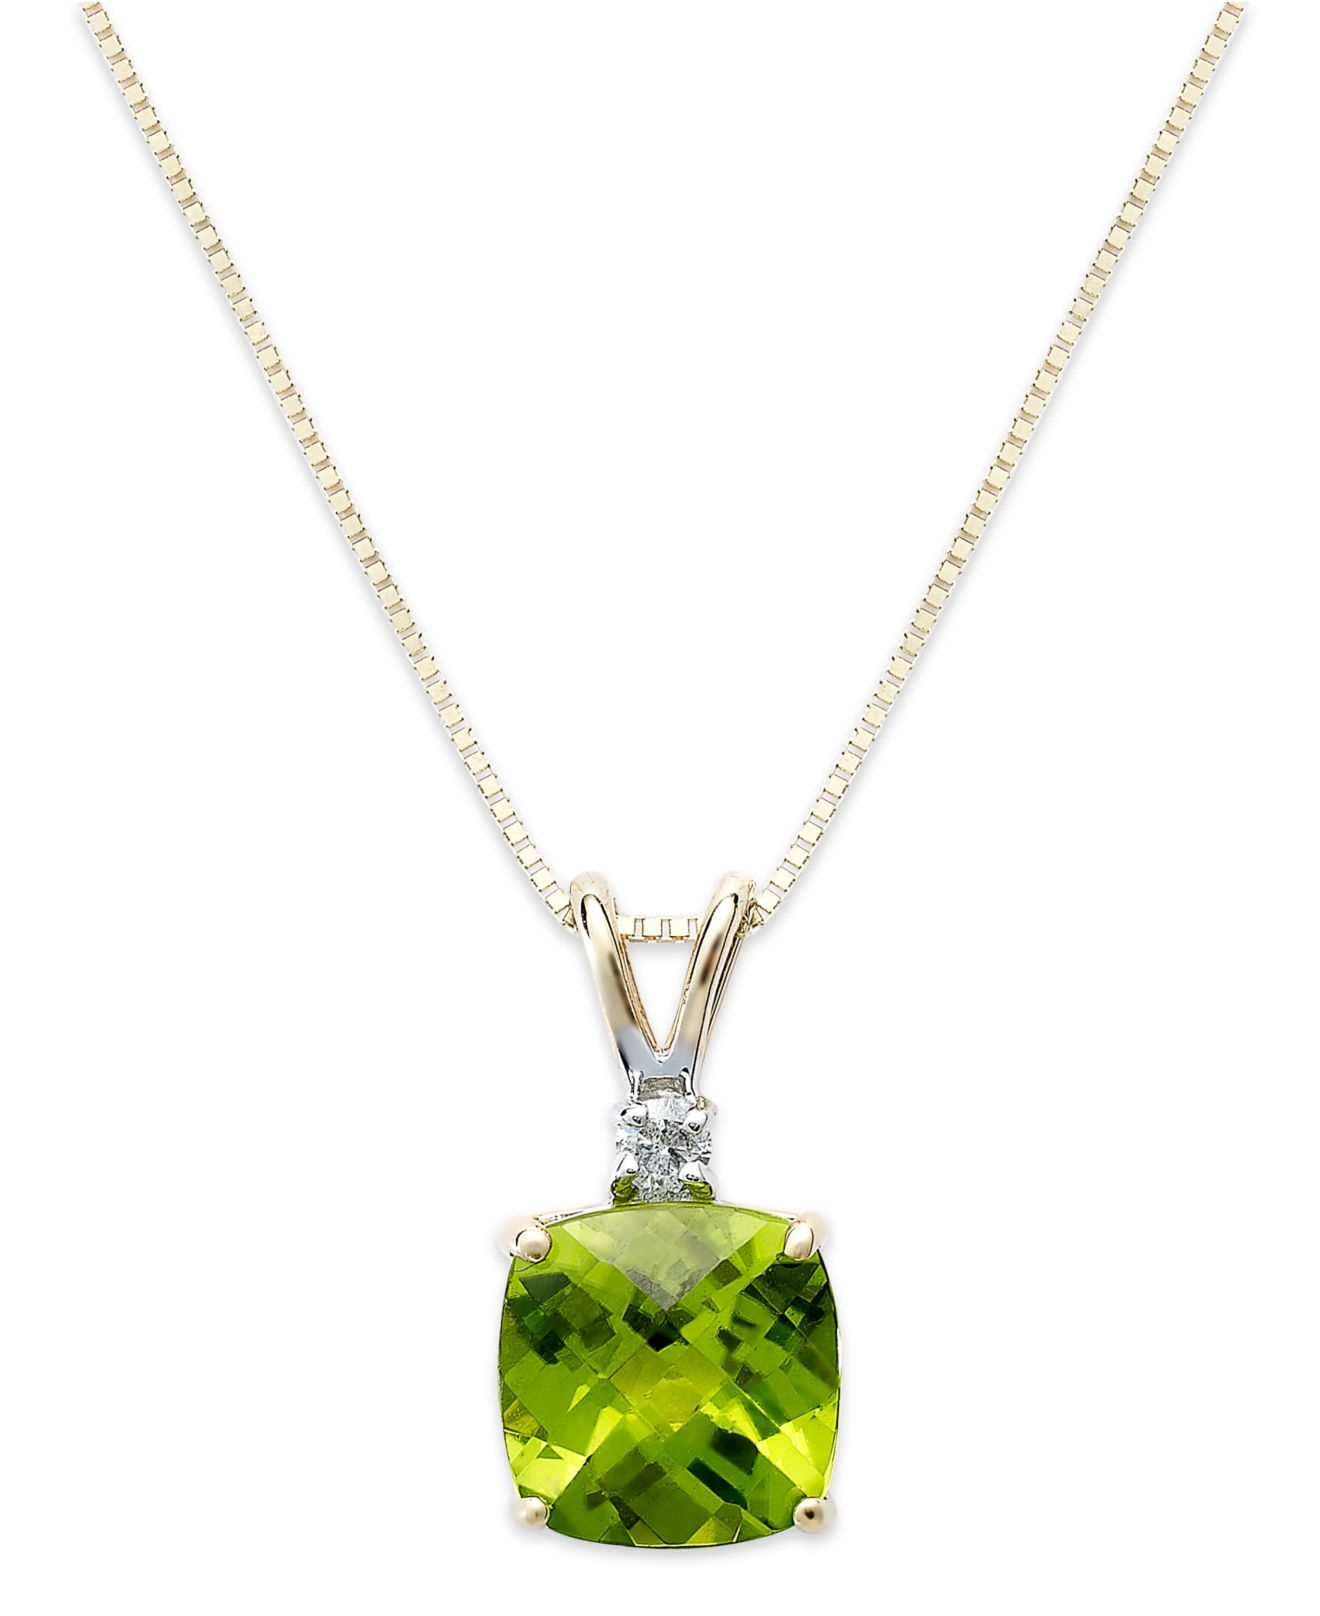 macy s us 14k gold necklace peridot 1 5 8 ct t w and